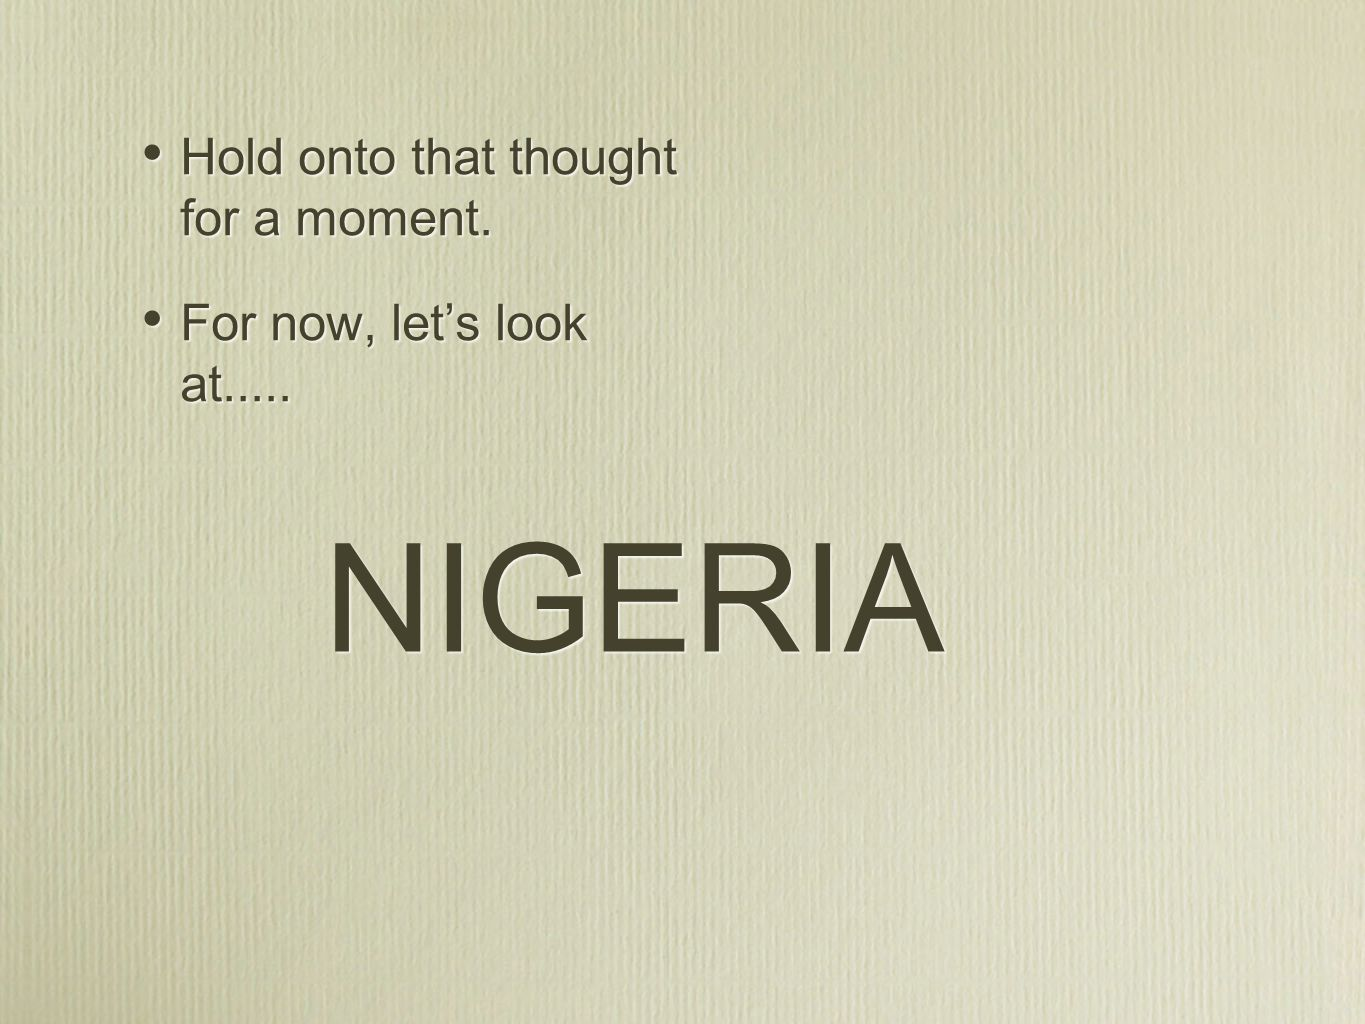 NIGERIA Hold onto that thought for a moment. For now, let's look at..... Hold onto that thought for a moment. For now, let's look at.....